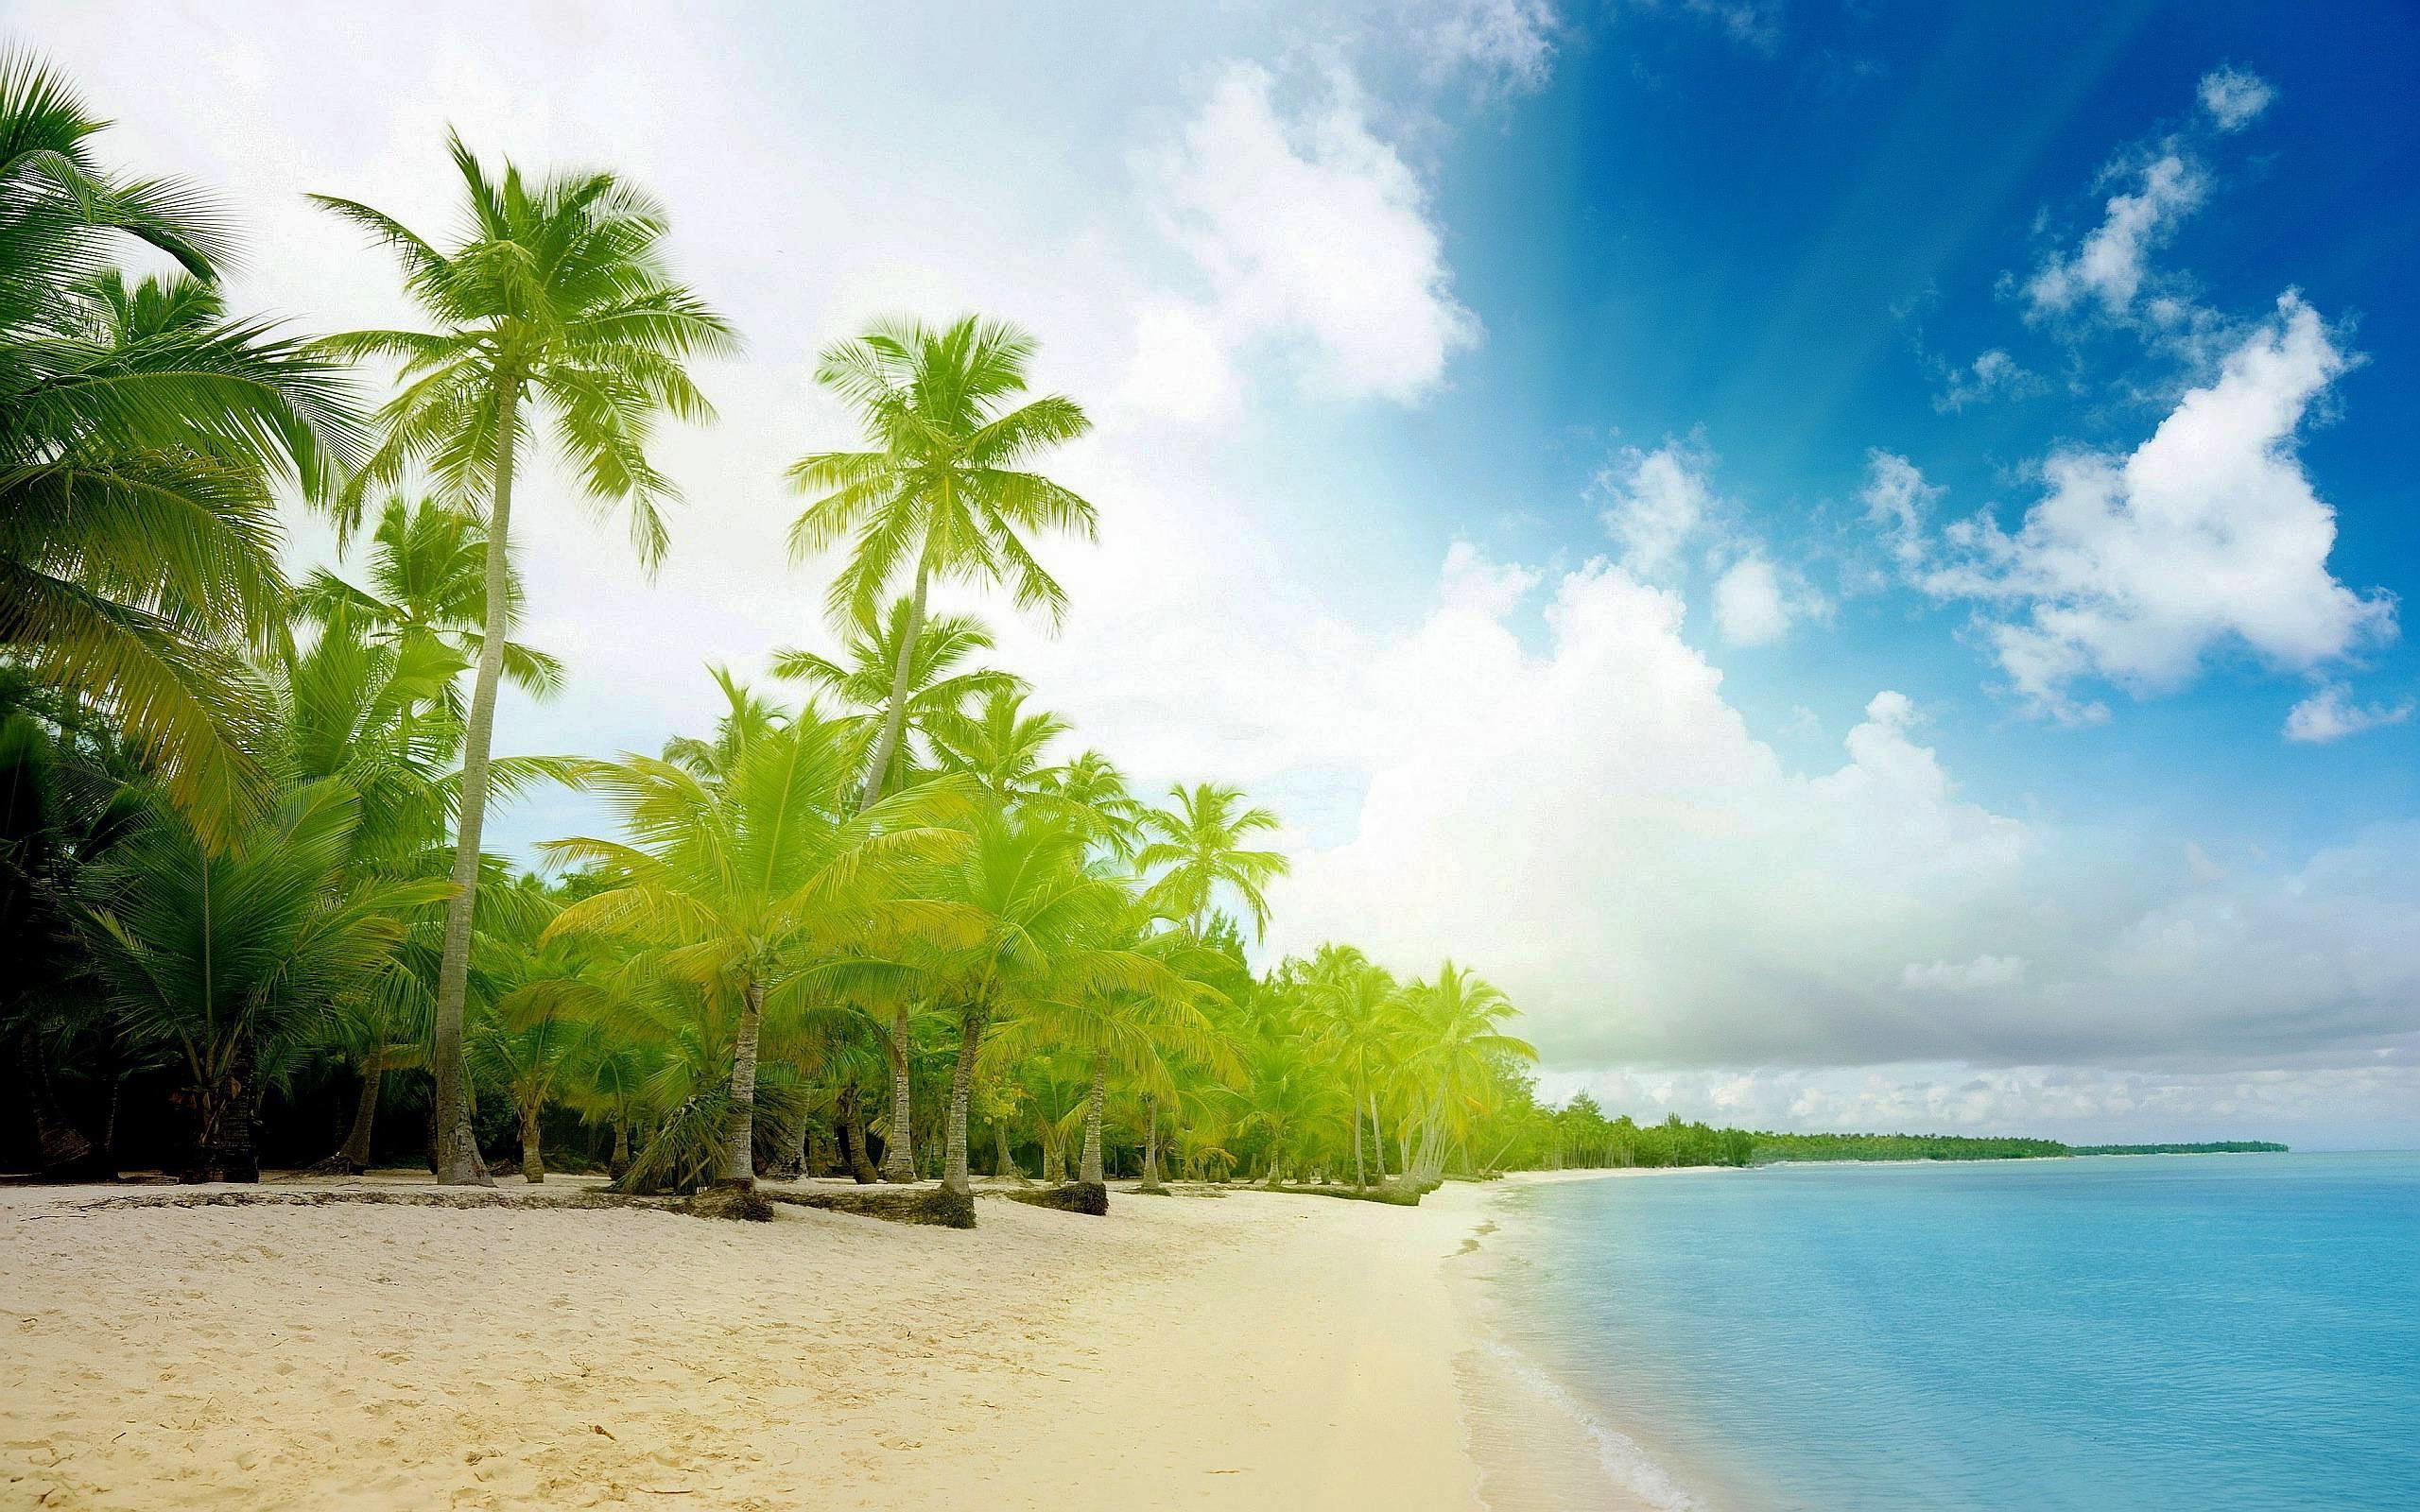 hdr wallpapers 1080p tropical - photo #5